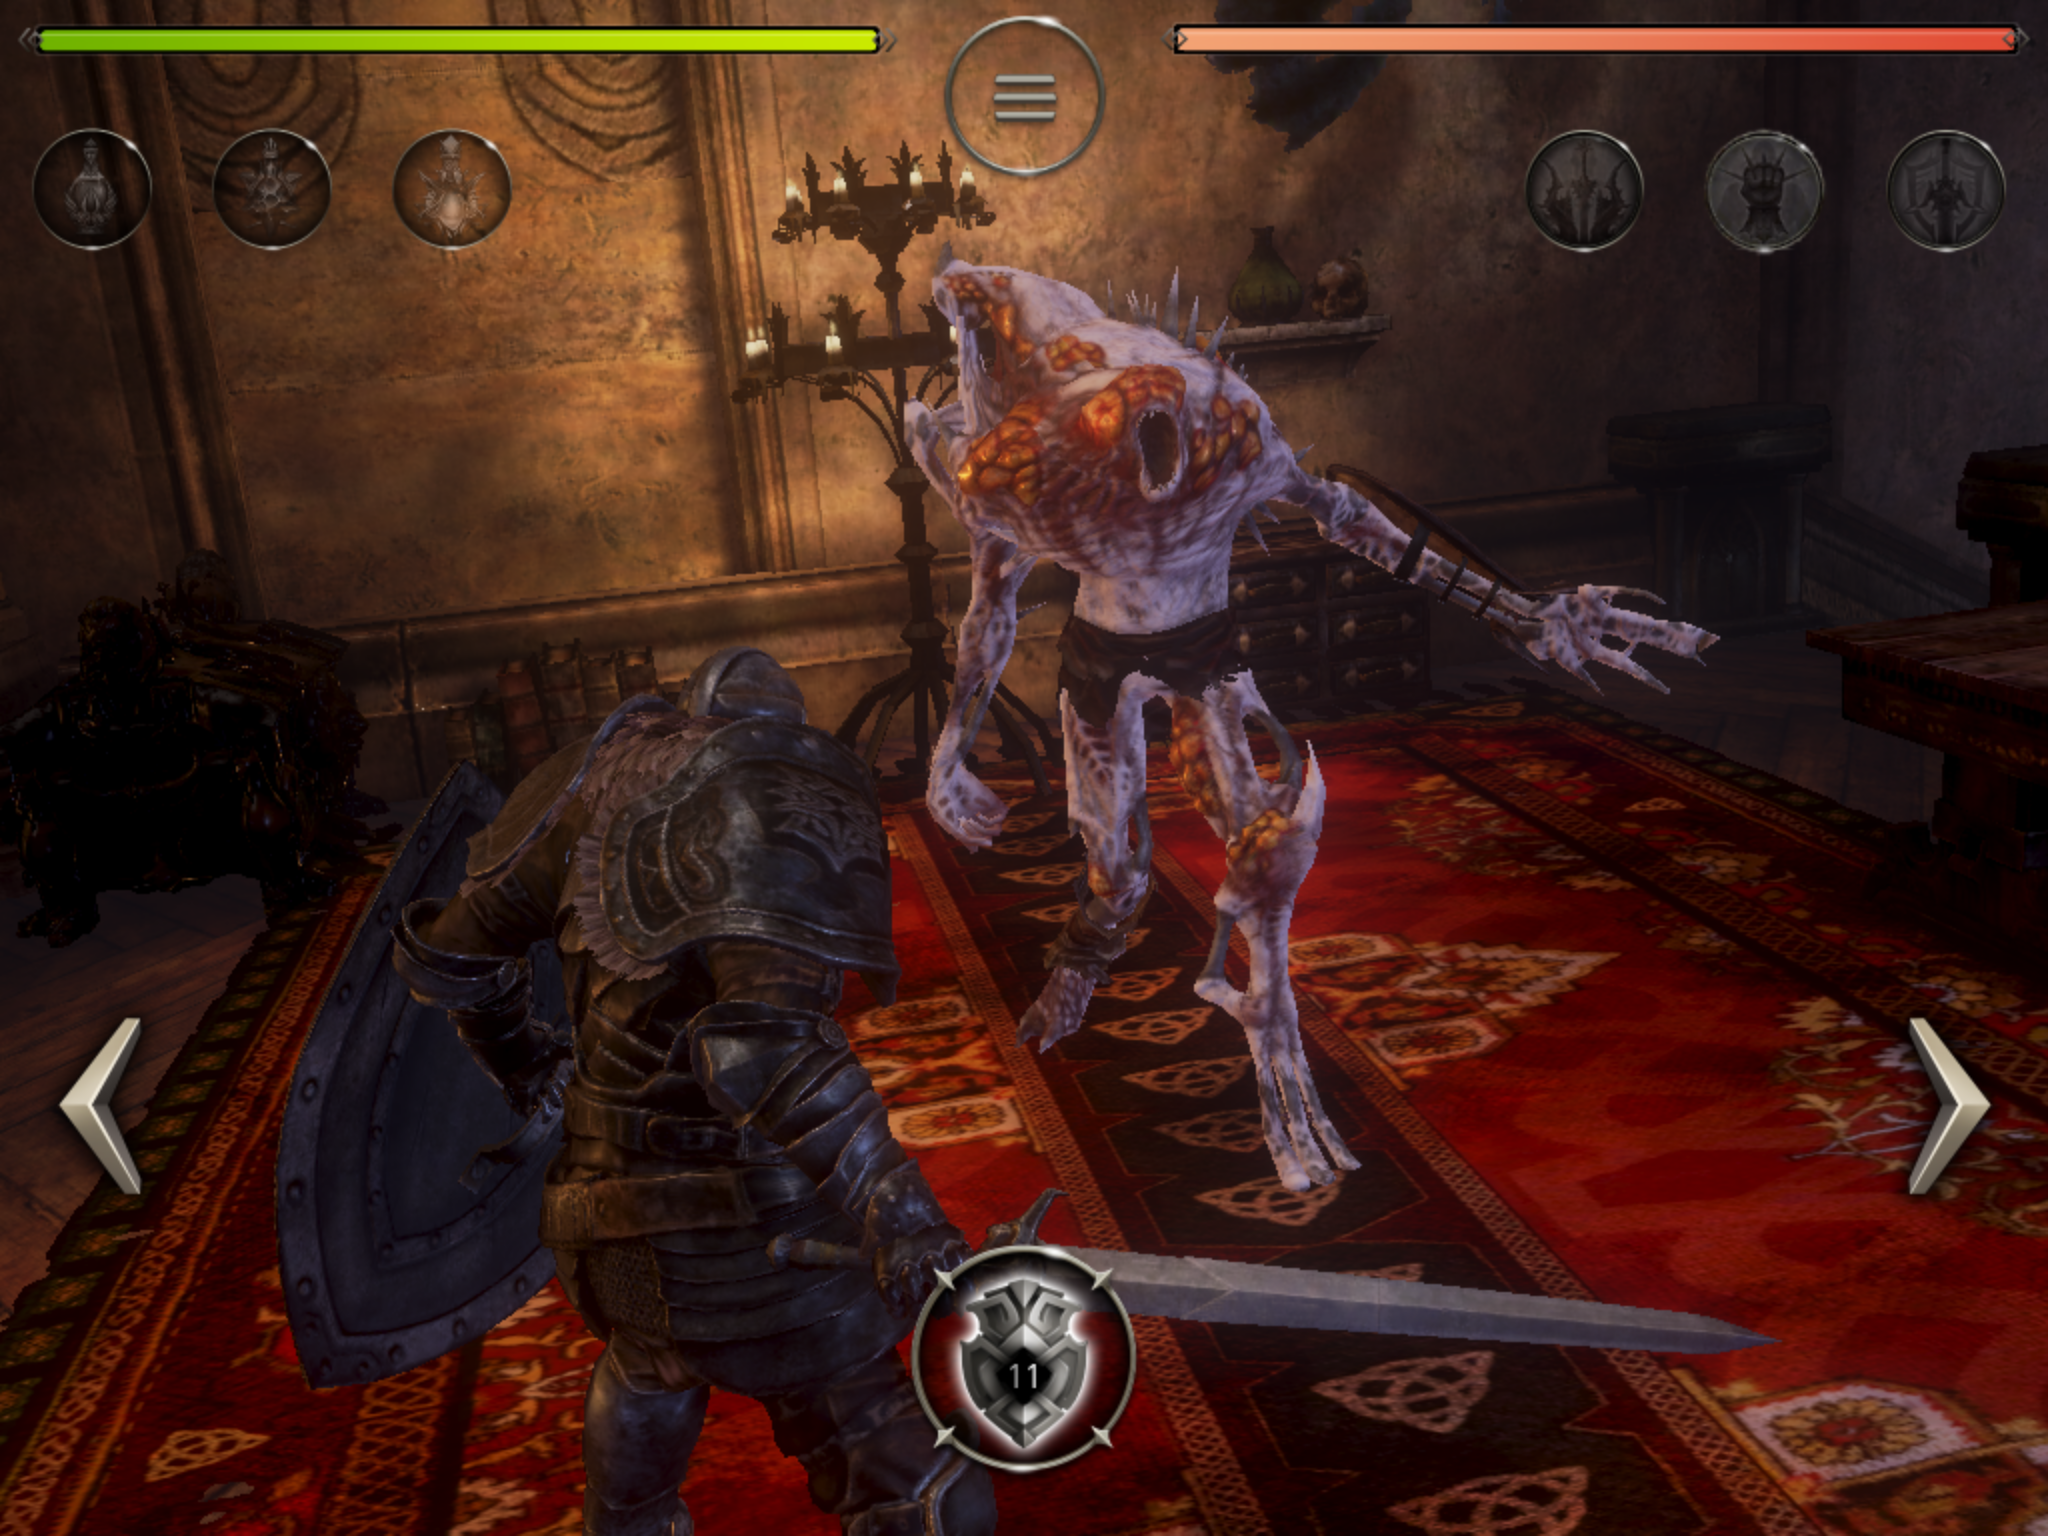 Lords of the Fallen review - An Infinity Blade-style hack and slasher